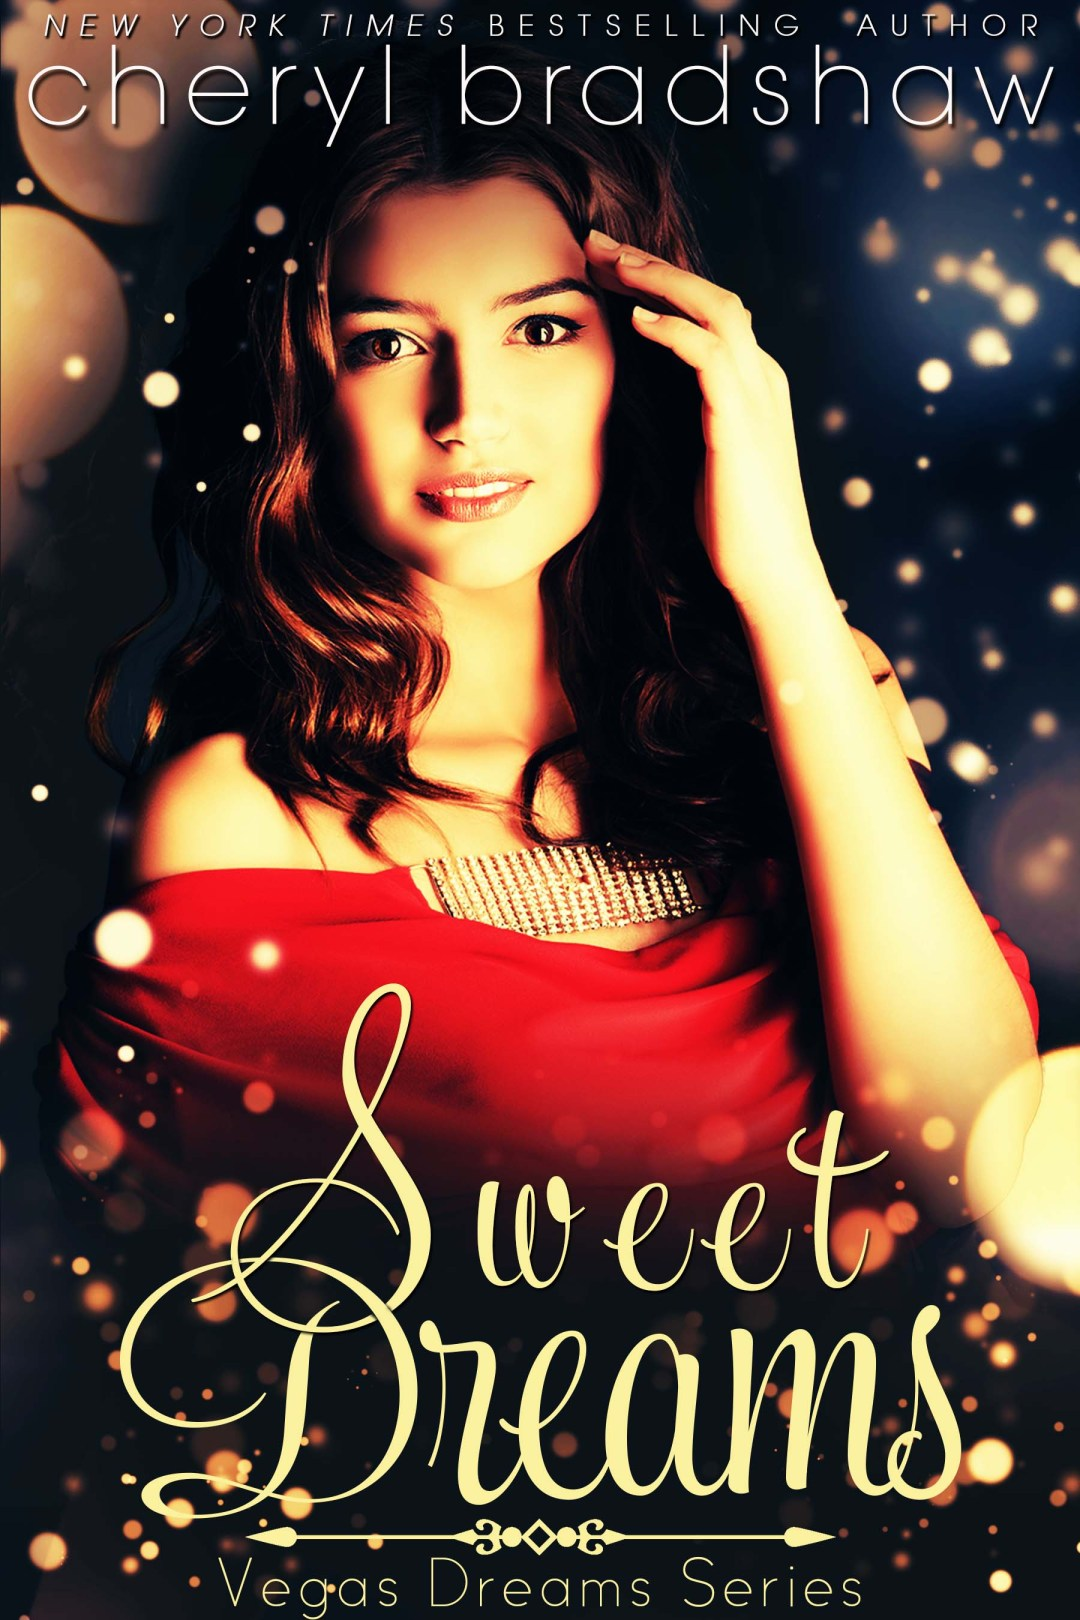 Sweet Dreams by Cheryl Bradshaw New York Times bestselling author